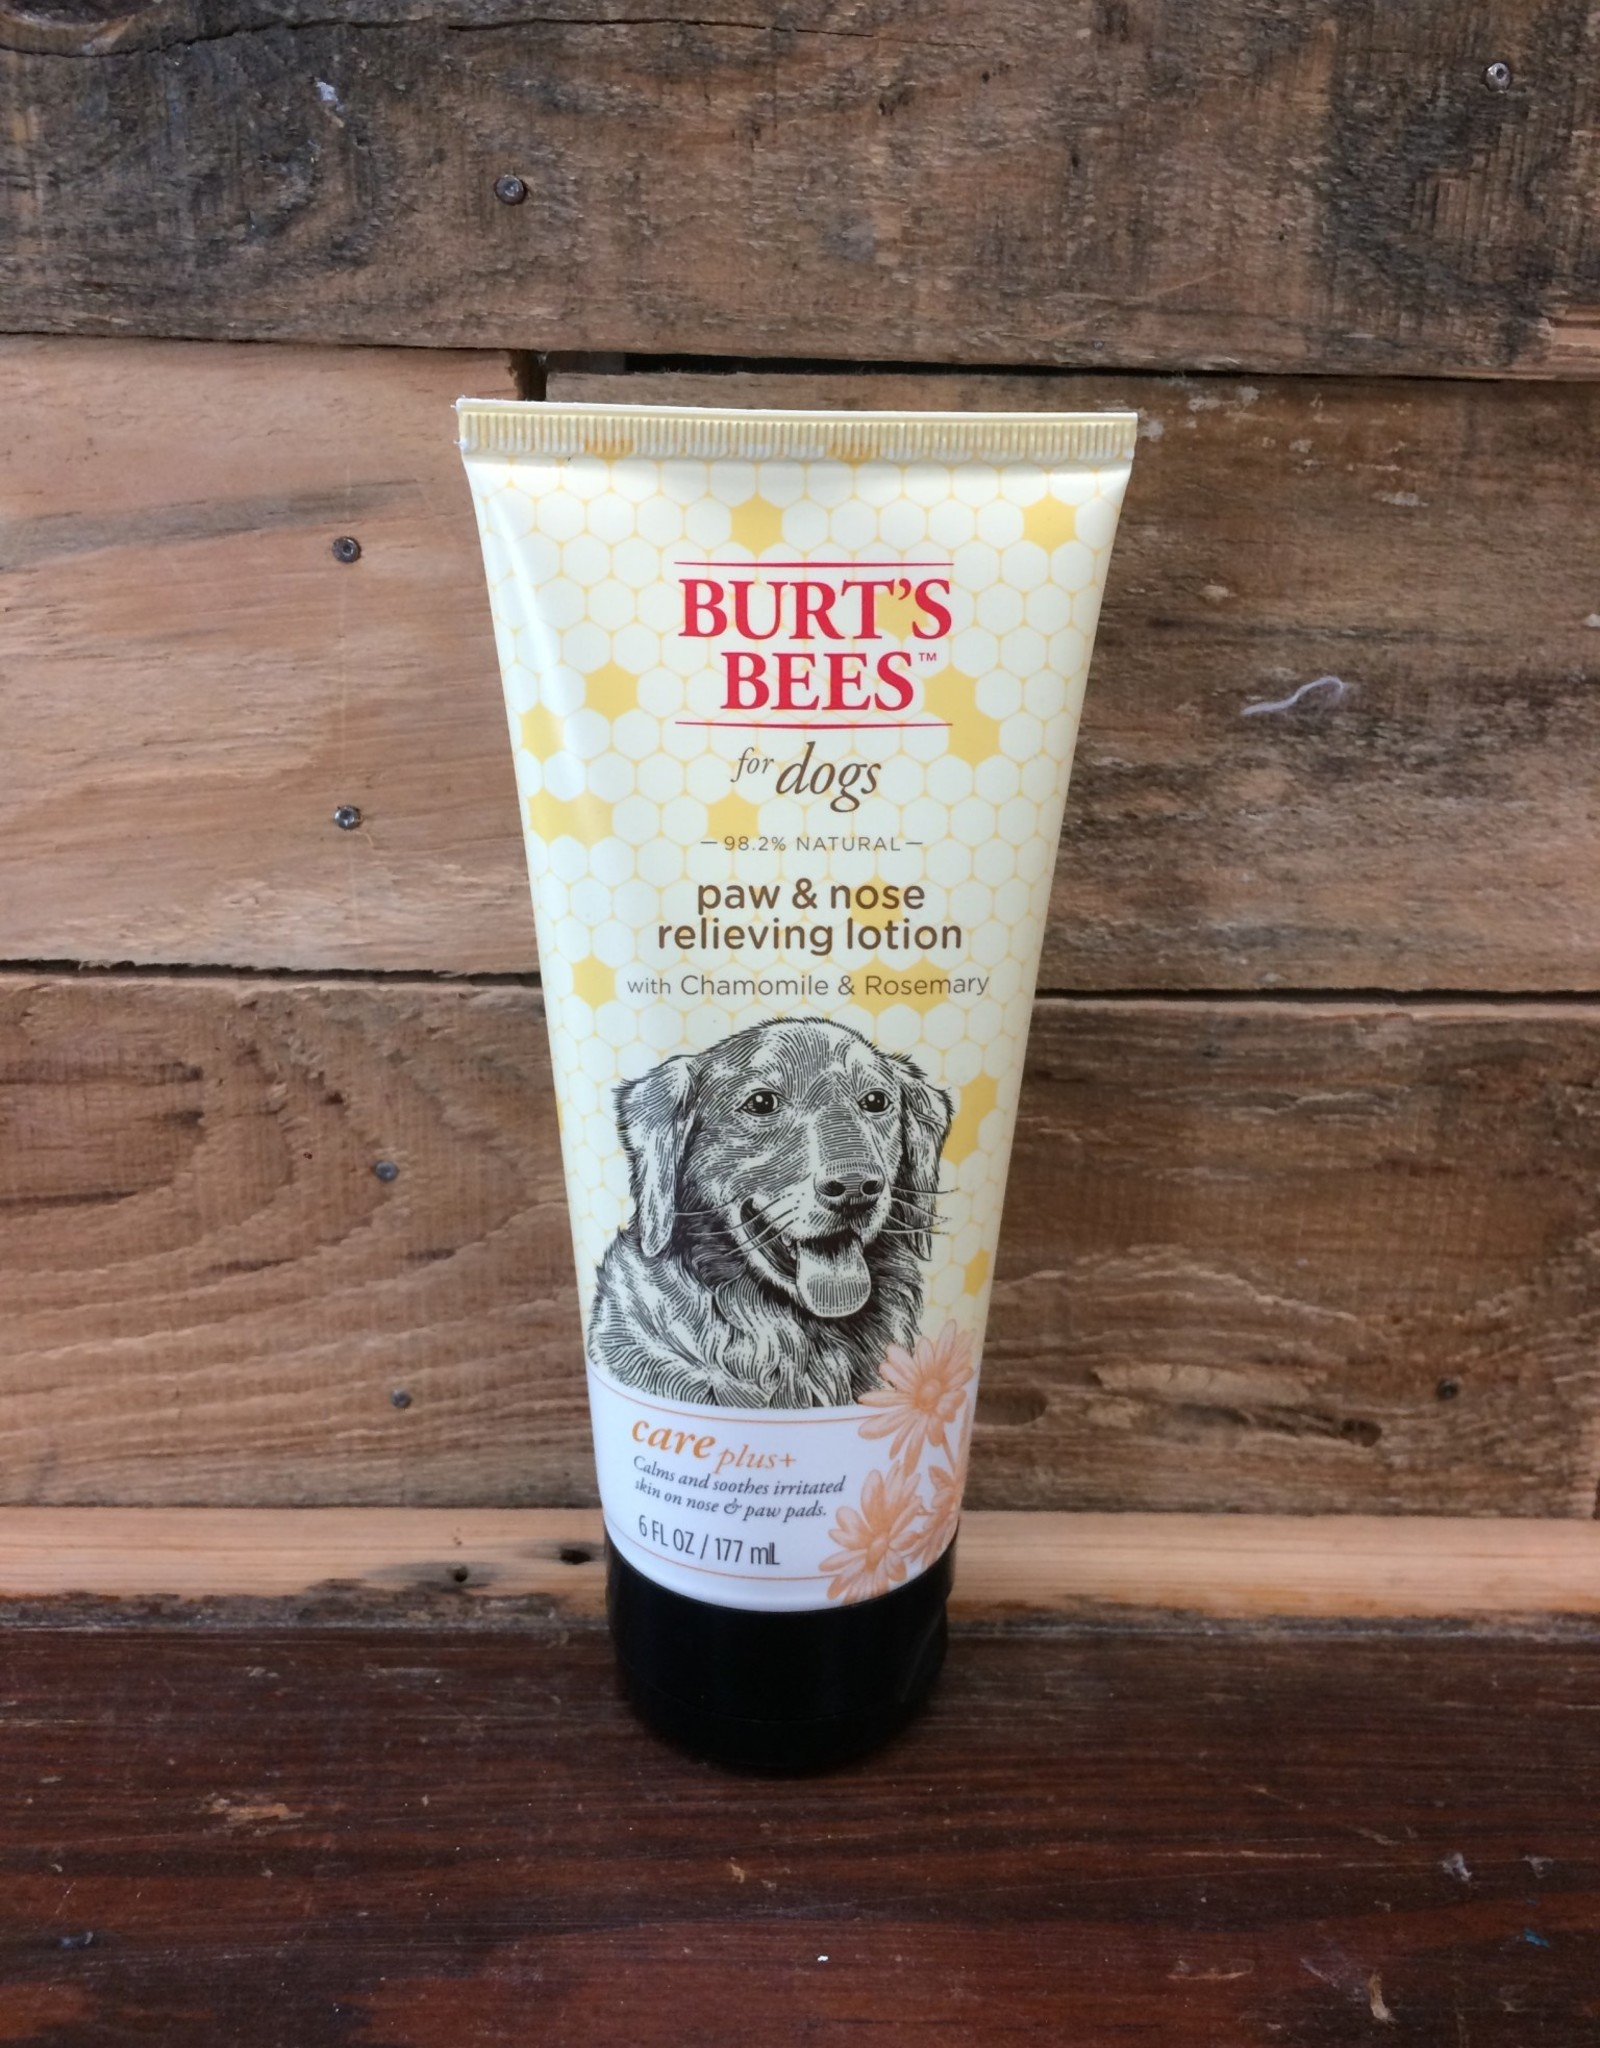 Burts Bee For Dogs Burts Bees Care plus Paw and nose relieving lotion/chamomile and rosemary